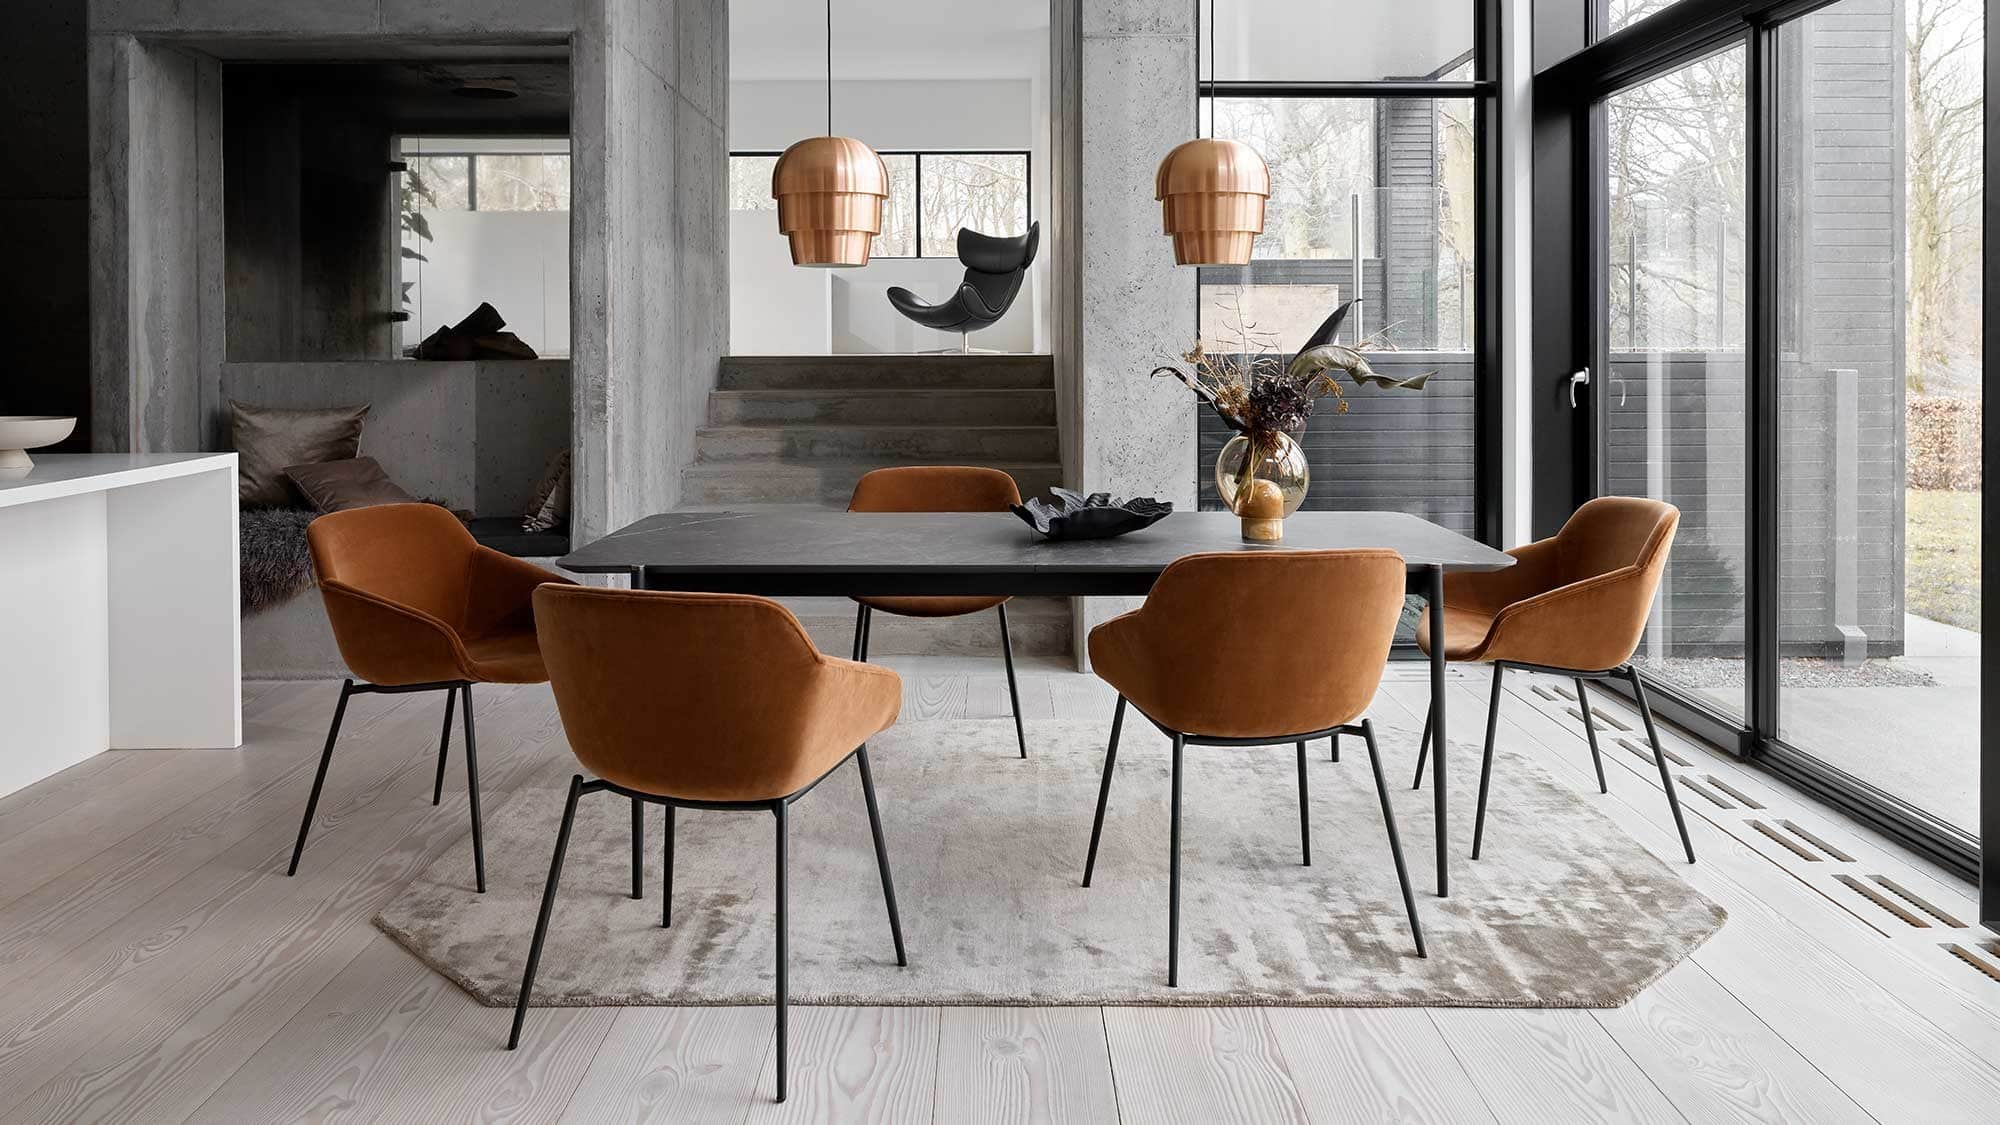 boconcept tan velvet dining chairs with black legs in masculine dining room